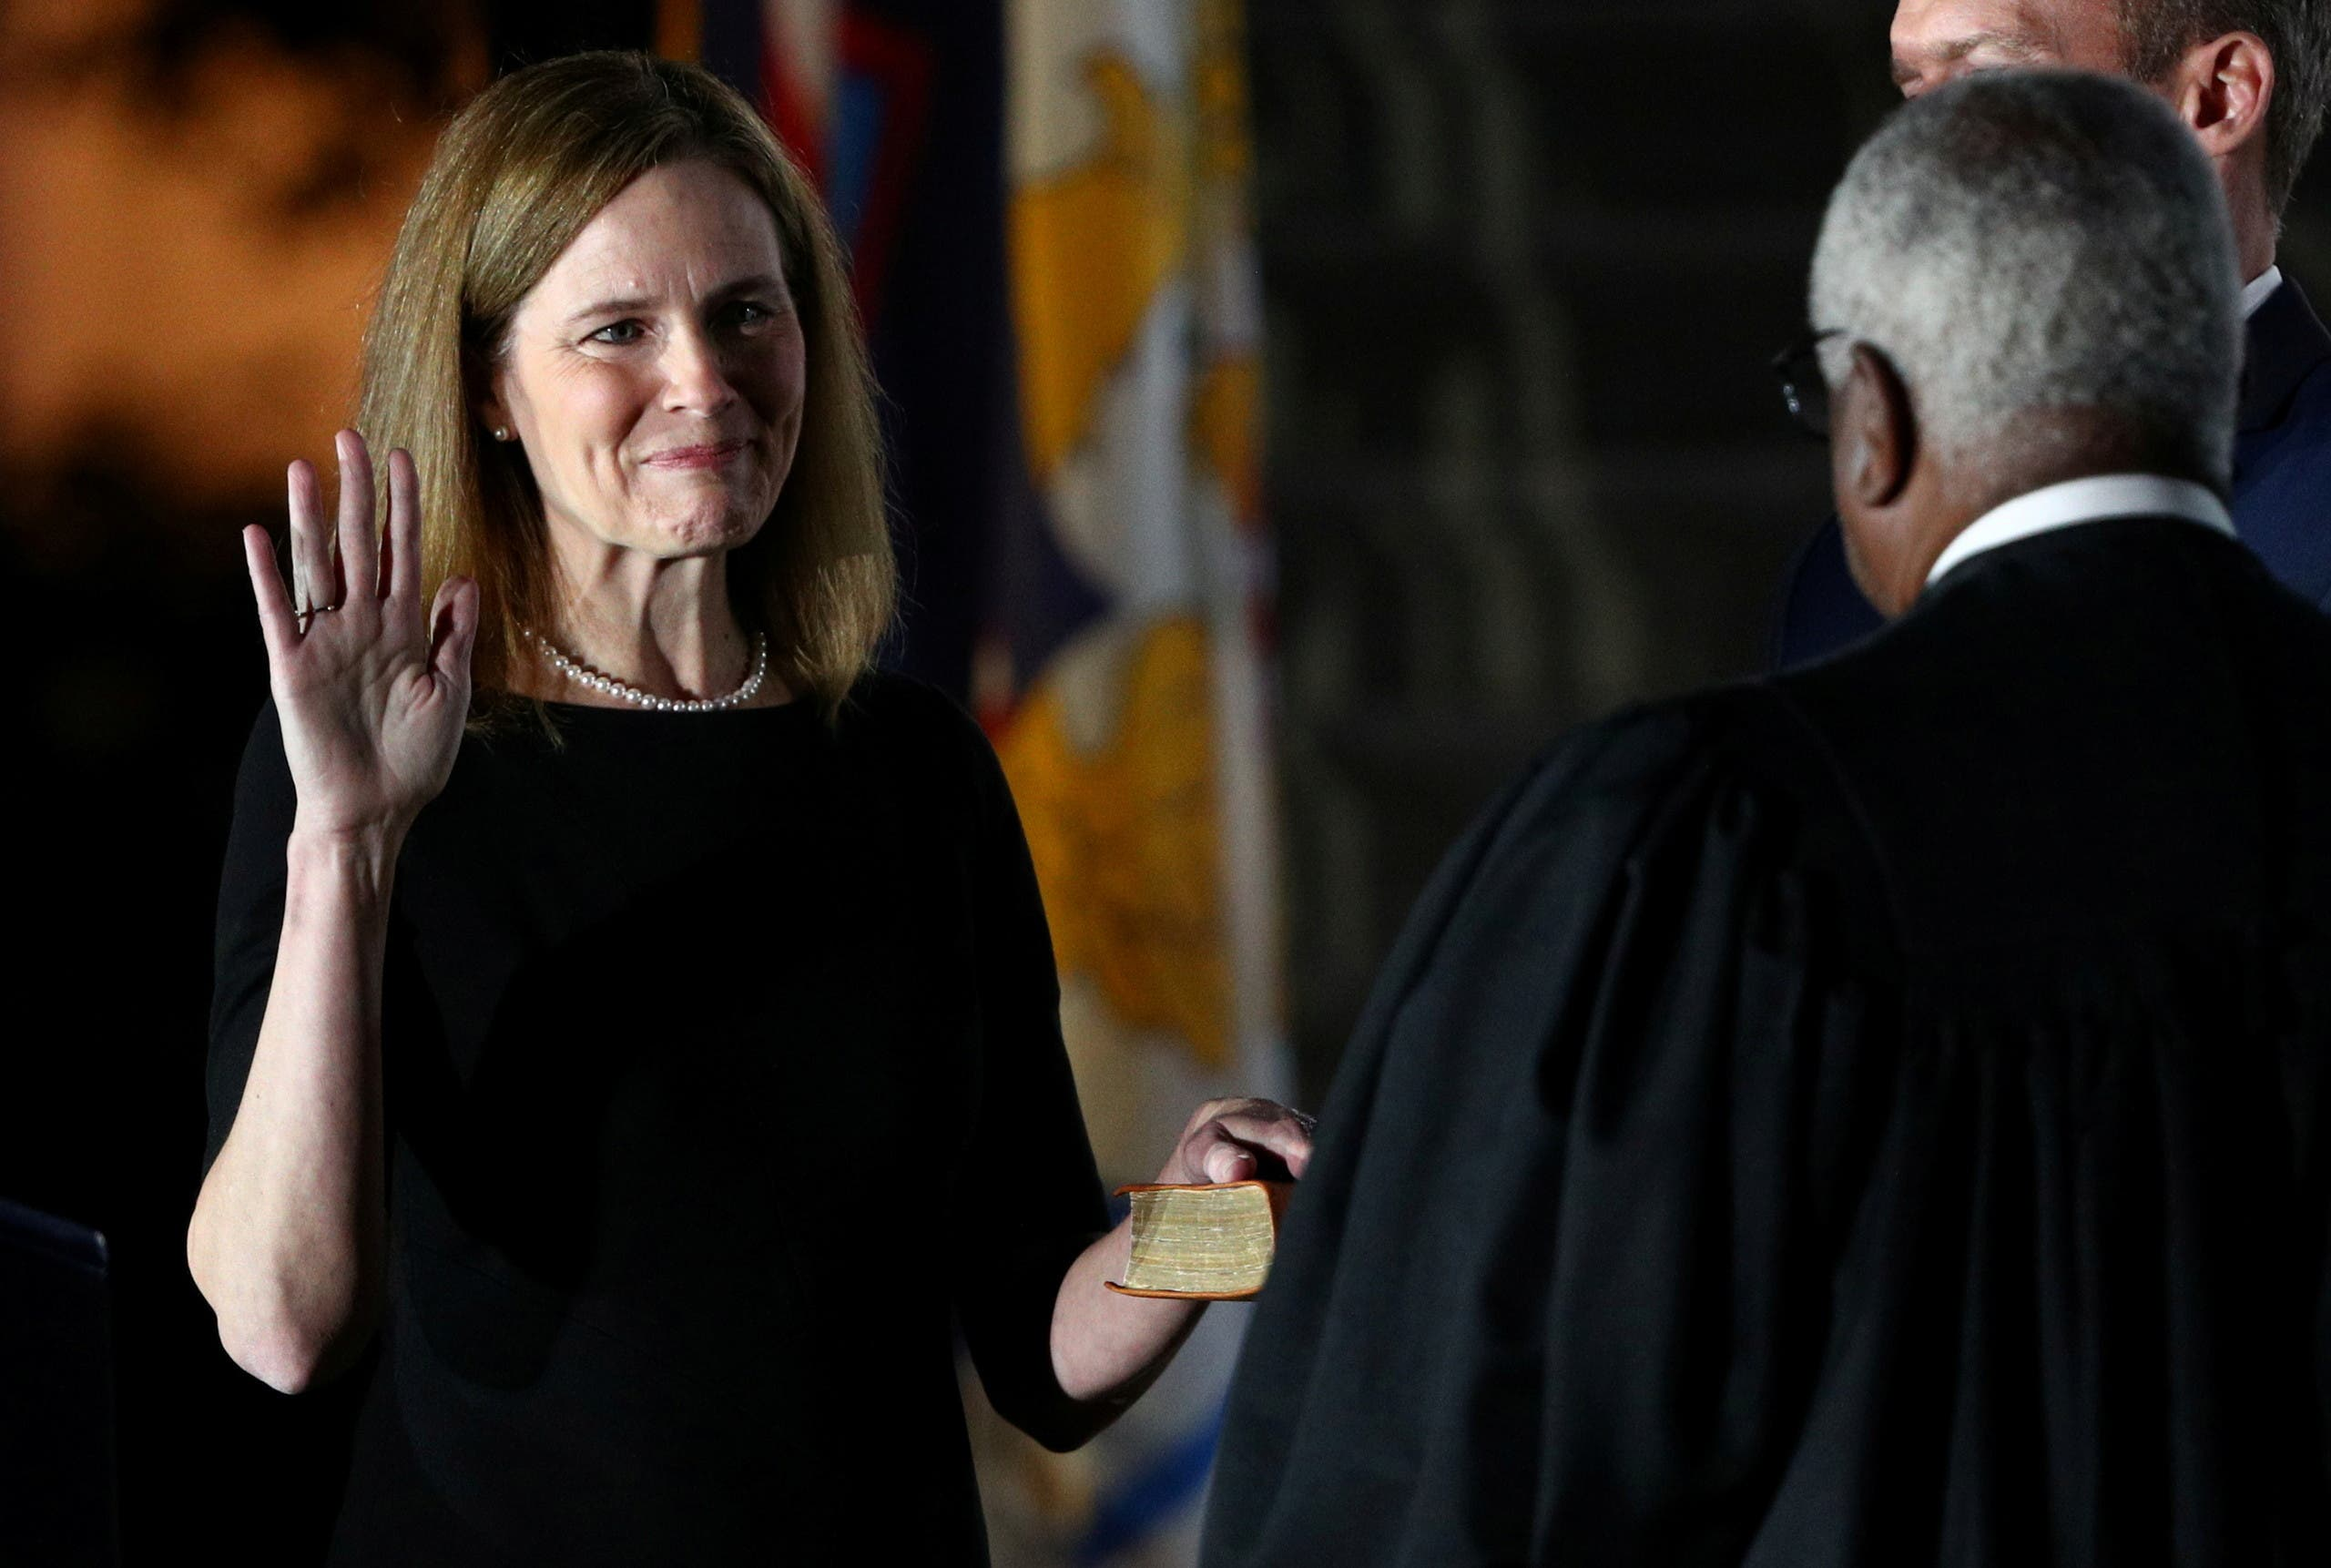 Trump pick Judge Amy Coney is sworn in as an associate justice of the US Supreme Court at the White House in Washington. (Reuters)